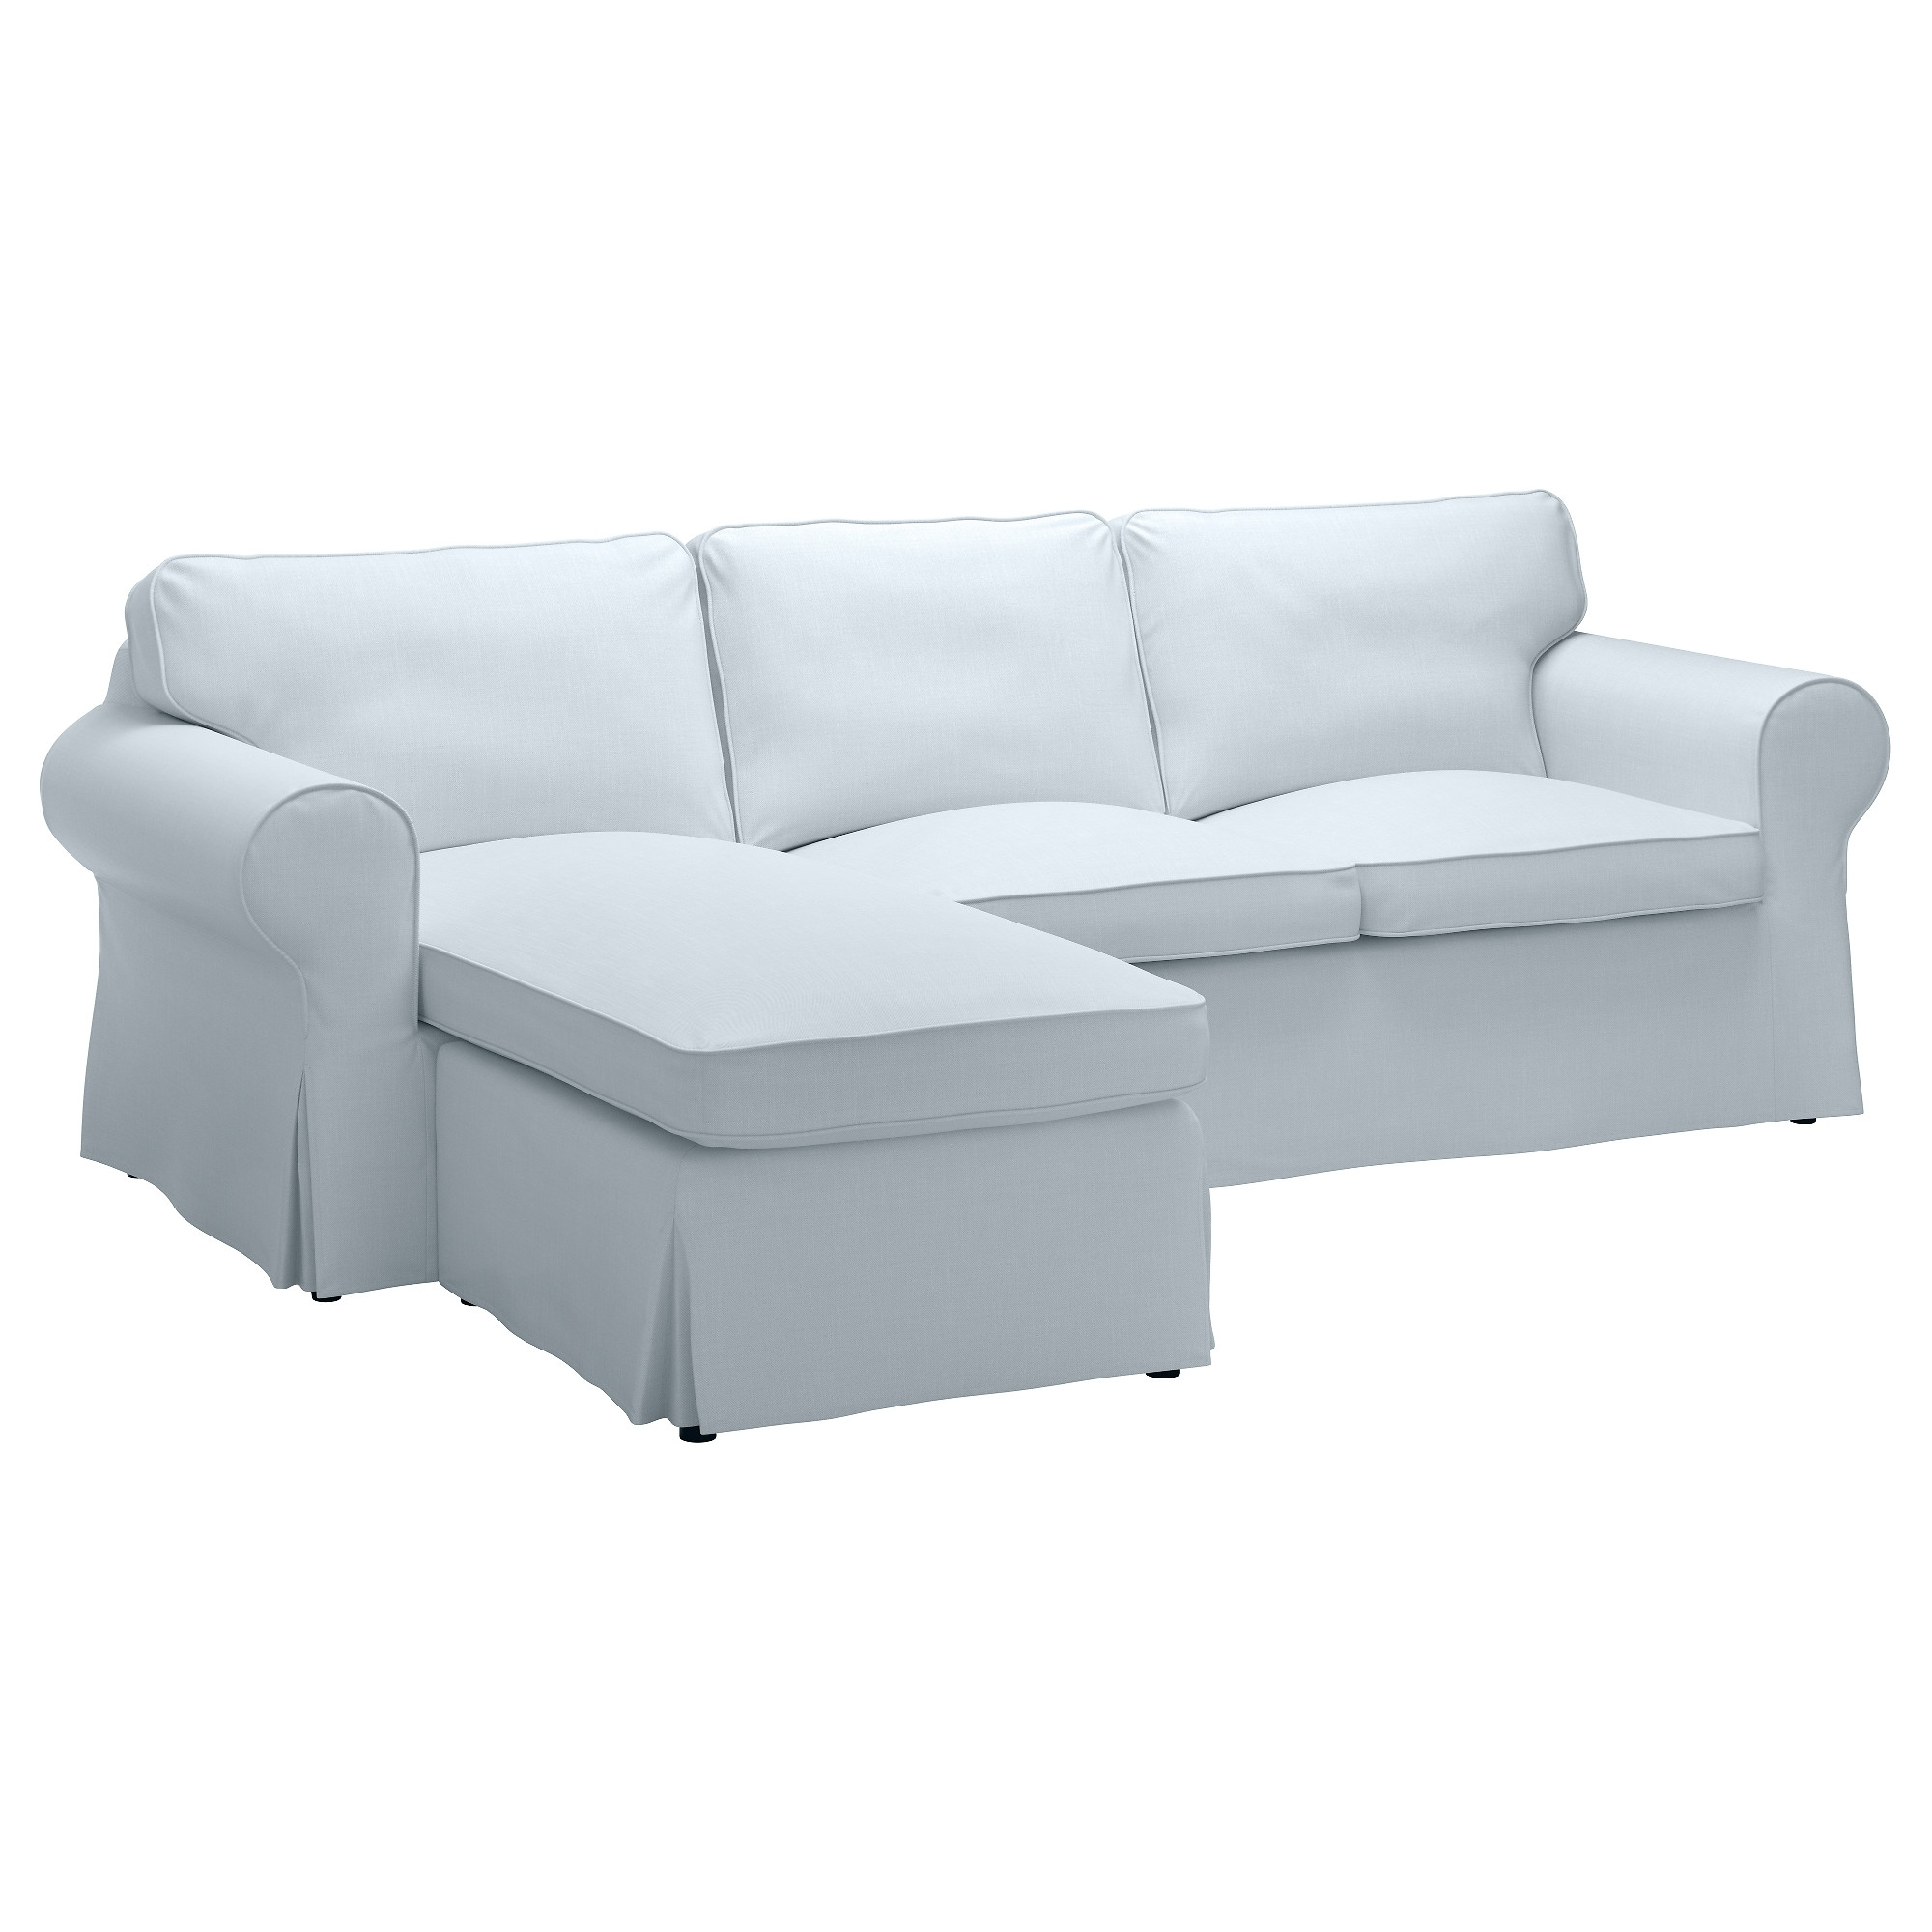 Ektorp Sofa – With Chaise/nordvalla Light Blue – Ikea Regarding Widely Used Ikea Sofa Beds With Chaise (View 12 of 15)